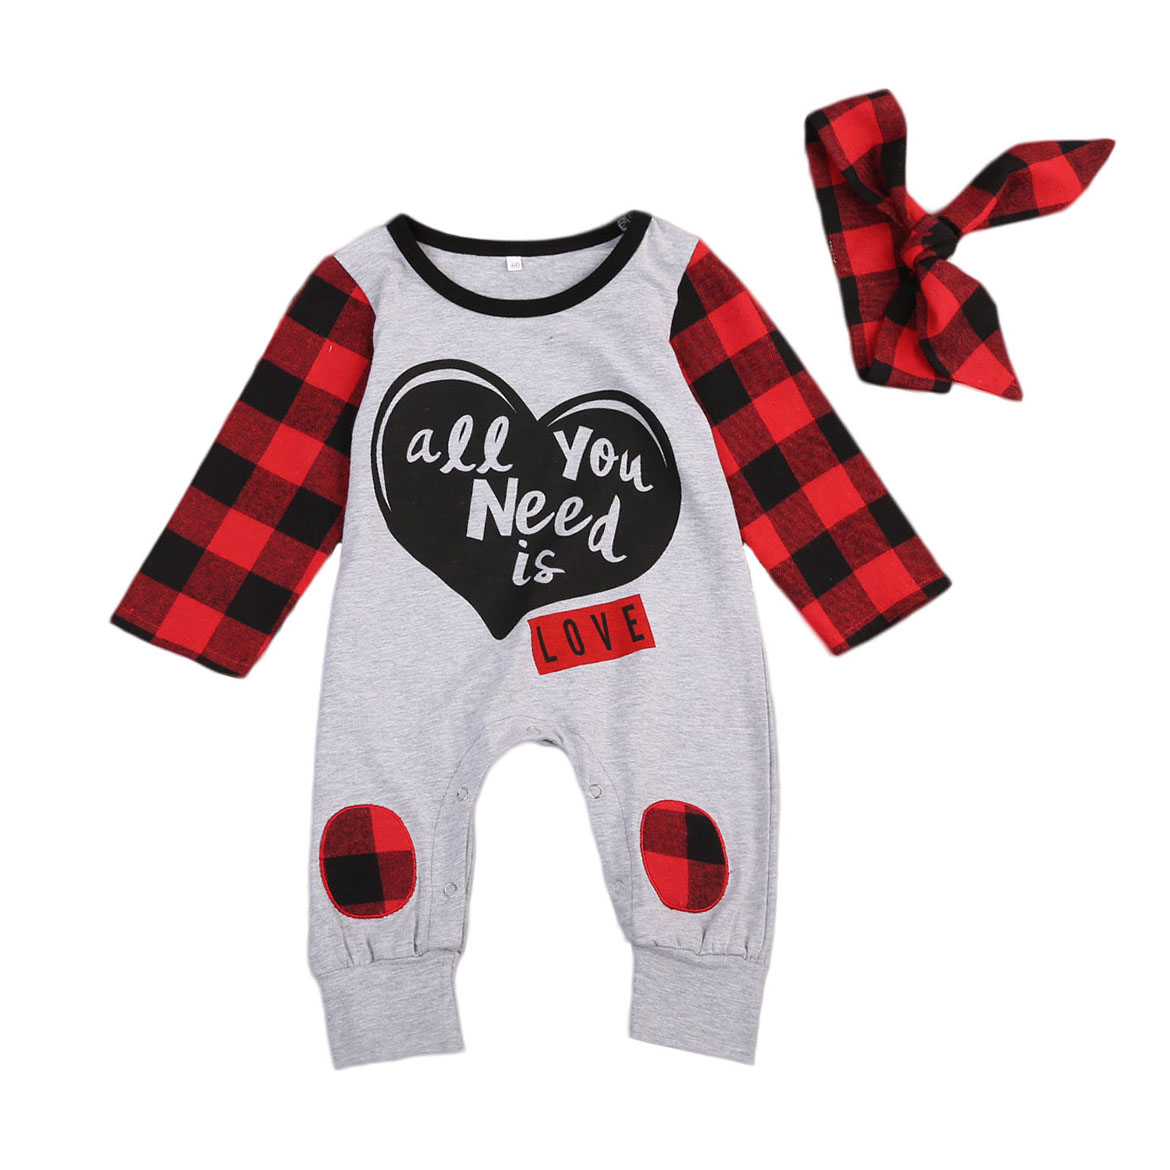 Toddler Infant Baby Boy Girl Clothing Romper Long Sleeve Jumpsuit Headband 2PCs Outfits Clothes Set Baby Girls infant baby girl boy clothes rompers long sleeve stripe cute romper jumpsuit outfits baby boys girls clothes